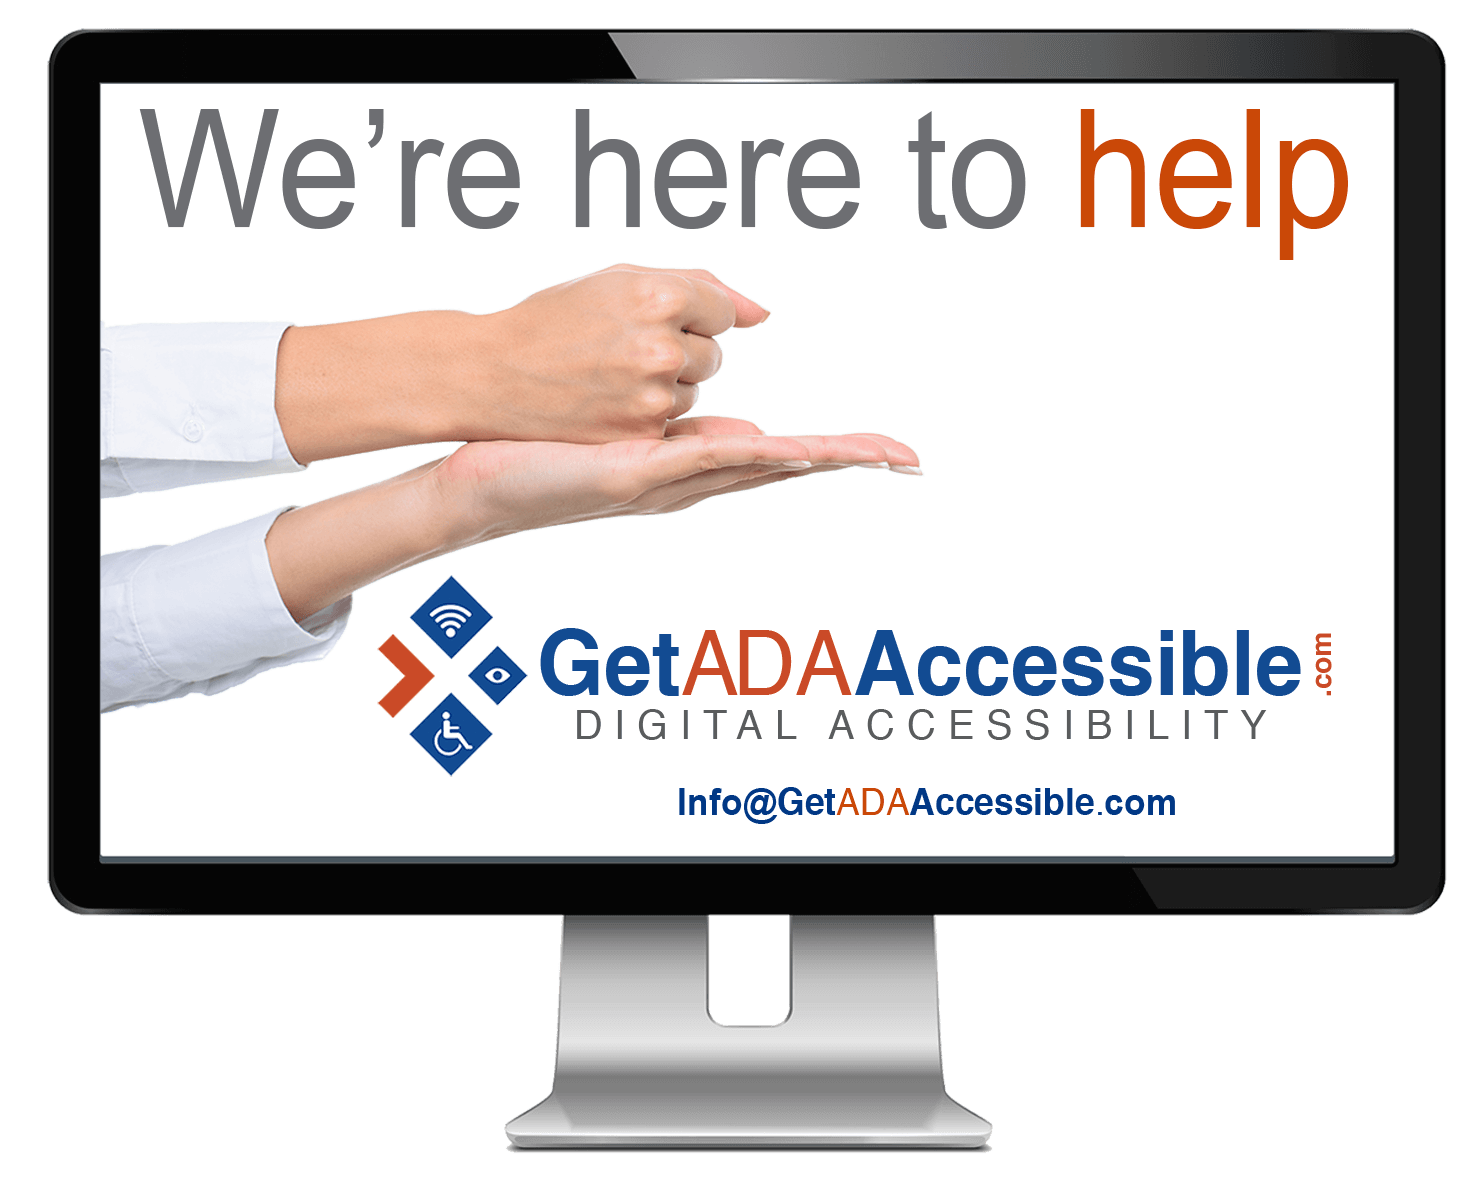 Get ADA Accessible is here to help with website accessiblity